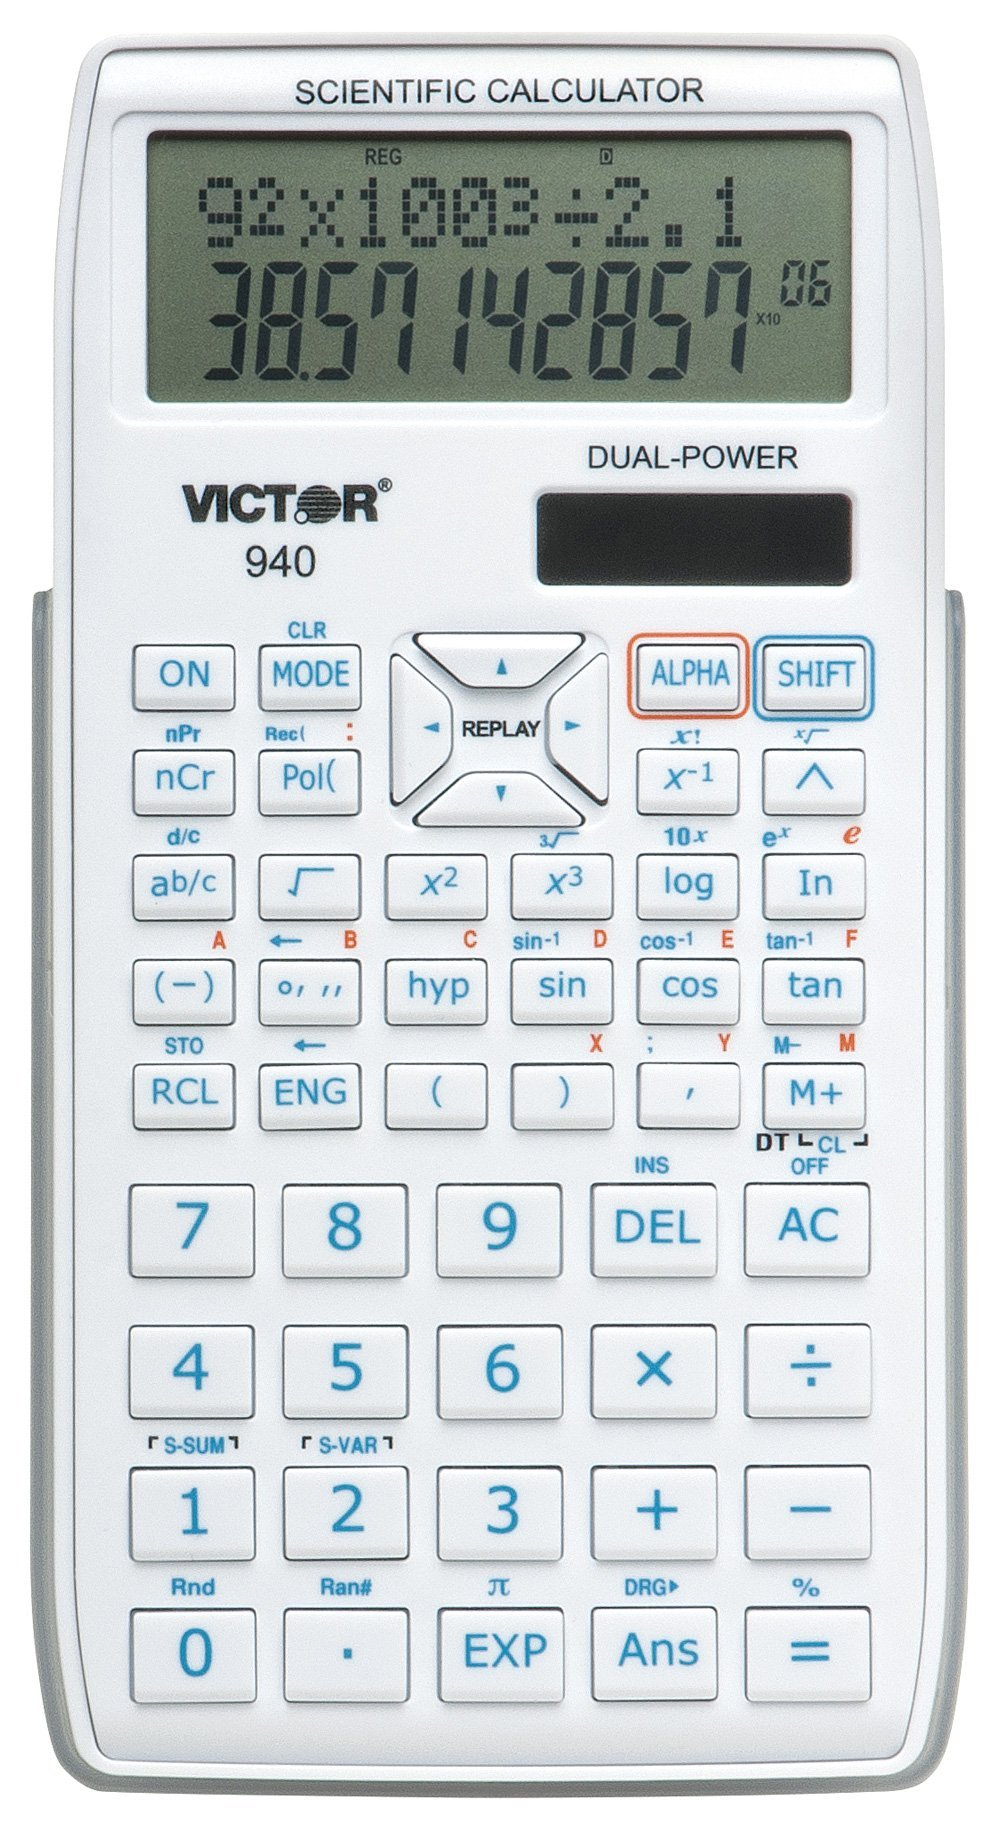 Victor 940 10-Digit Advanced Scientific Calculator with 2 Line Display, Battery and Solar Hybrid Powered LCD Display, Great for Students and Professionals, White by Victor